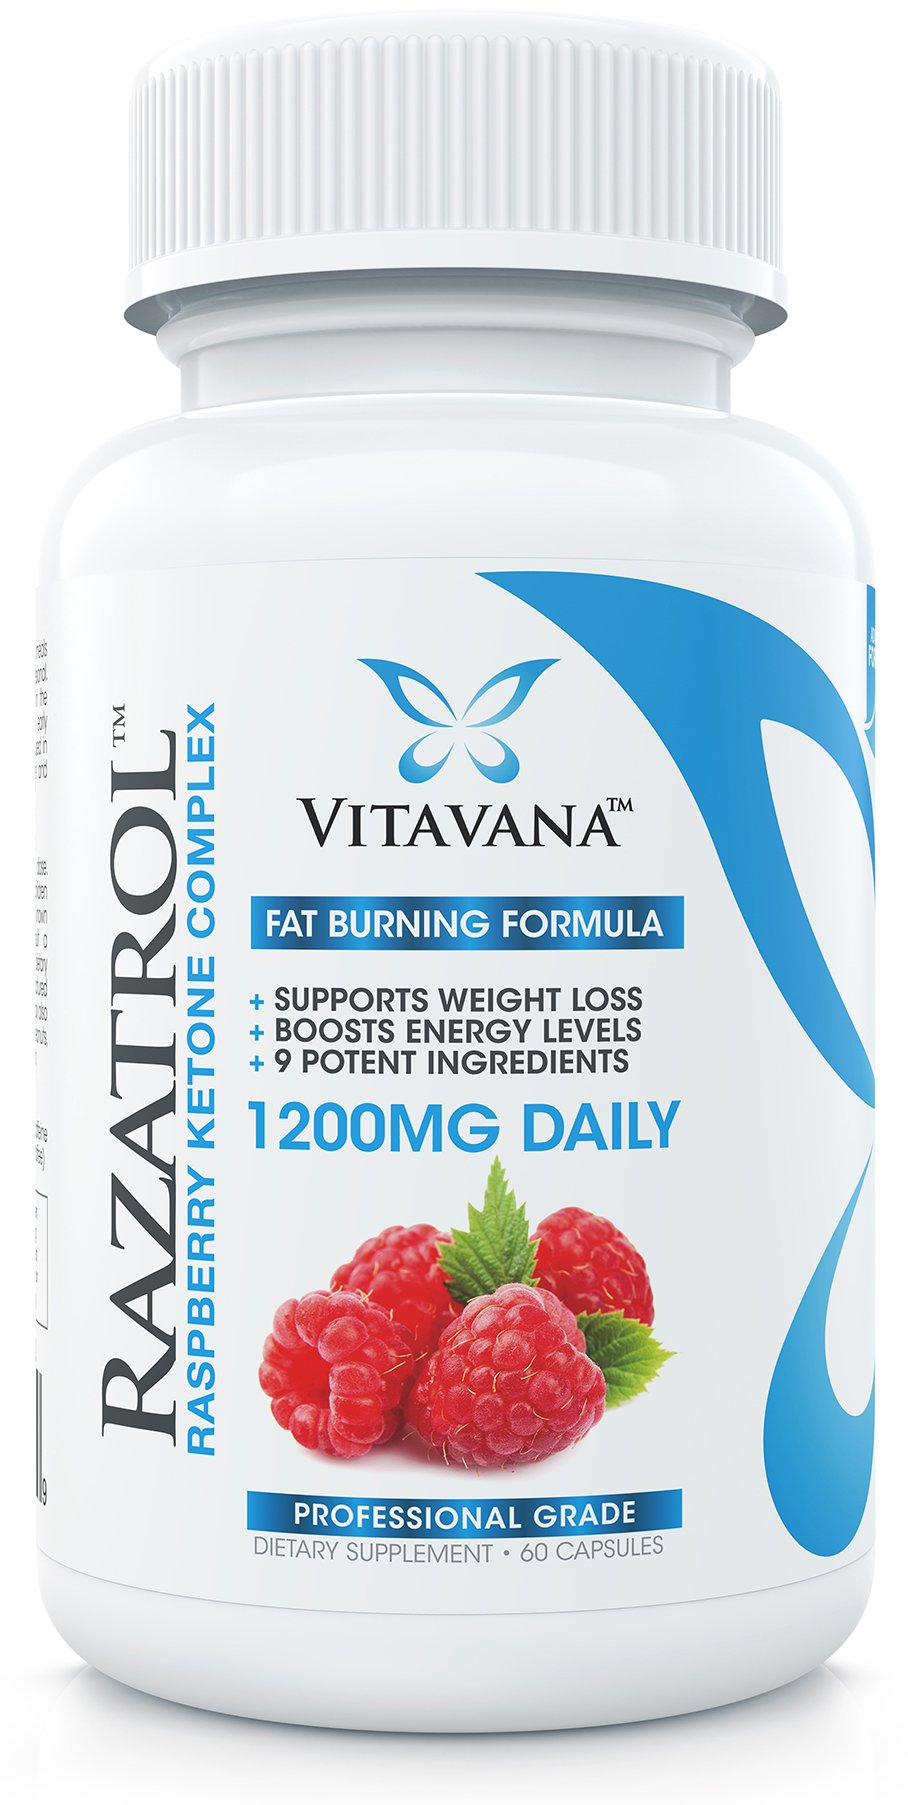 Razatrol Raspberry Ketones Diet Pills with Green Tea Extract, African Mango, Apple Cider Vinegar, Kelp, Acai Berry, Resveratrol, Grapefruit and Caffeine Anhydrous (6-Bottles)